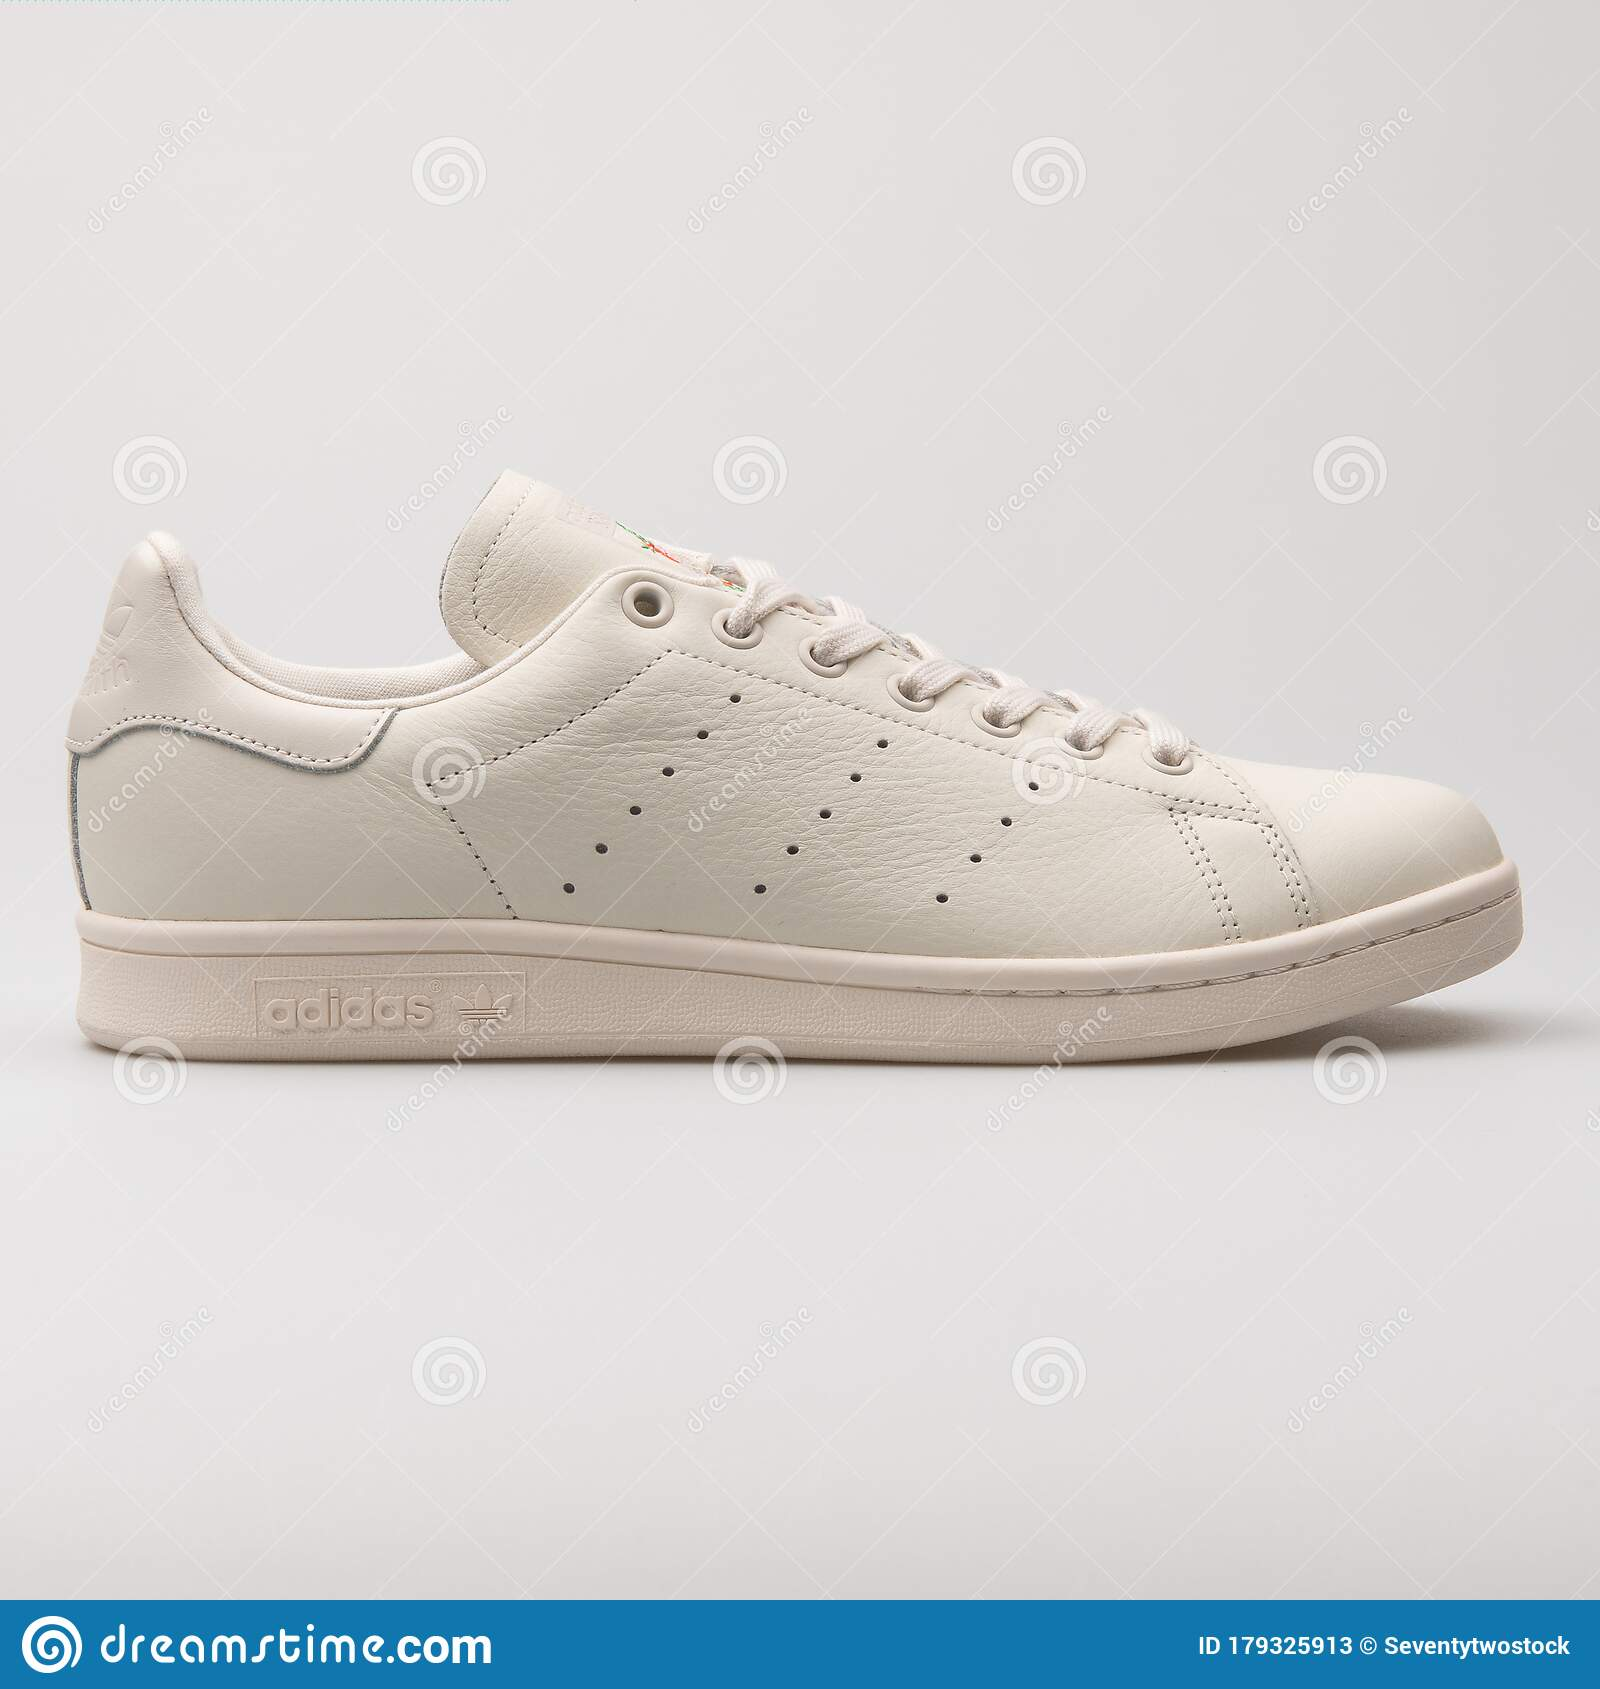 Adidas Stan Smith Beige Sneaker Editorial Stock Photo - Image of ...